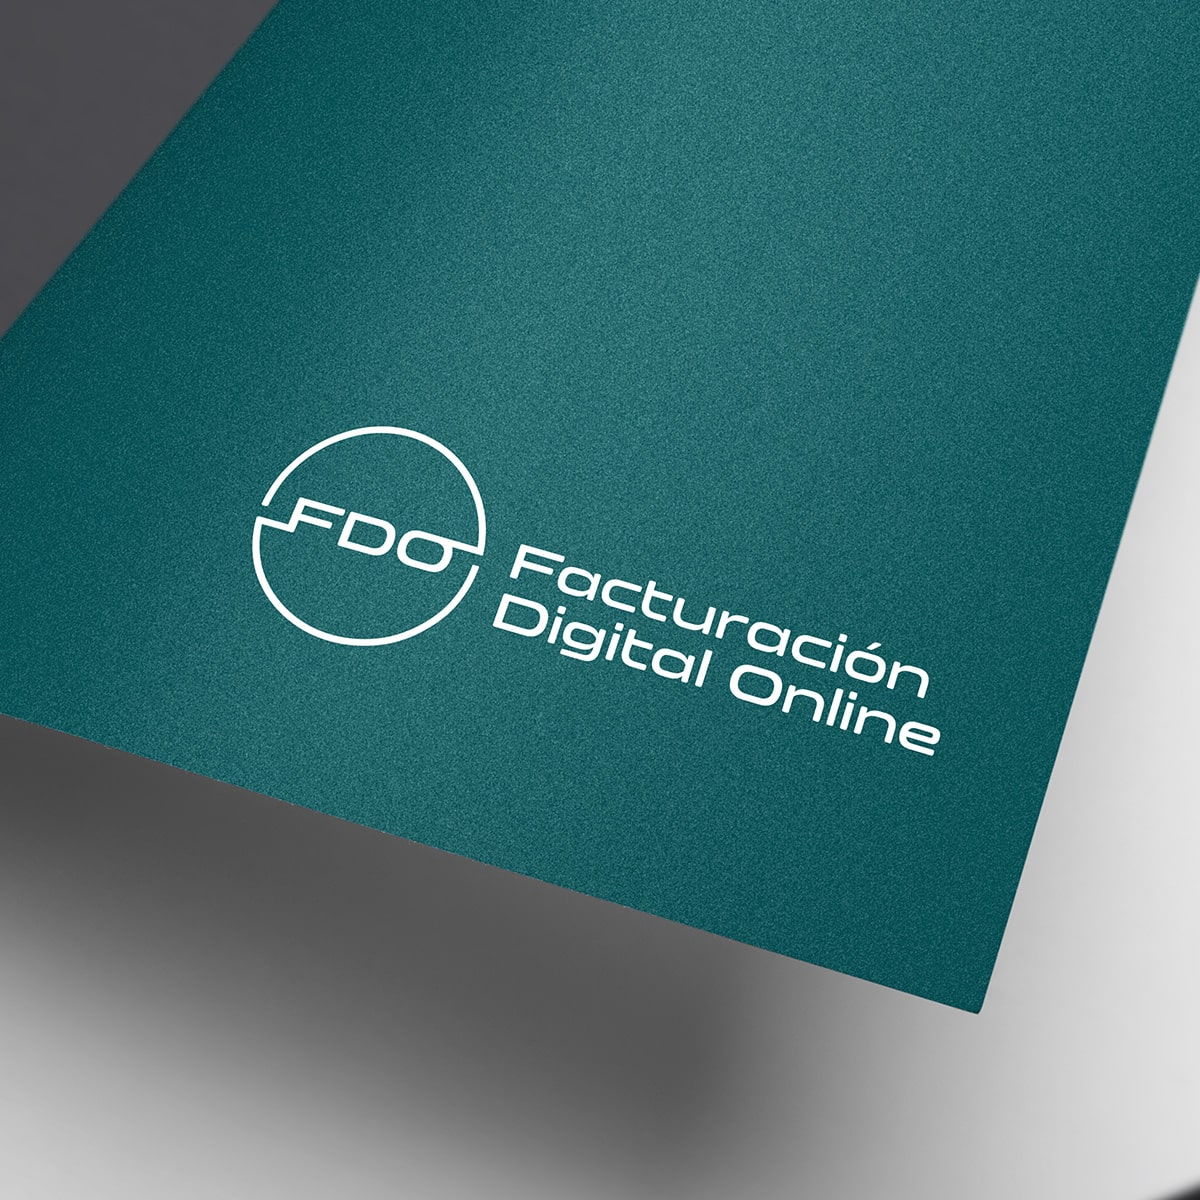 facturacion digital online branding